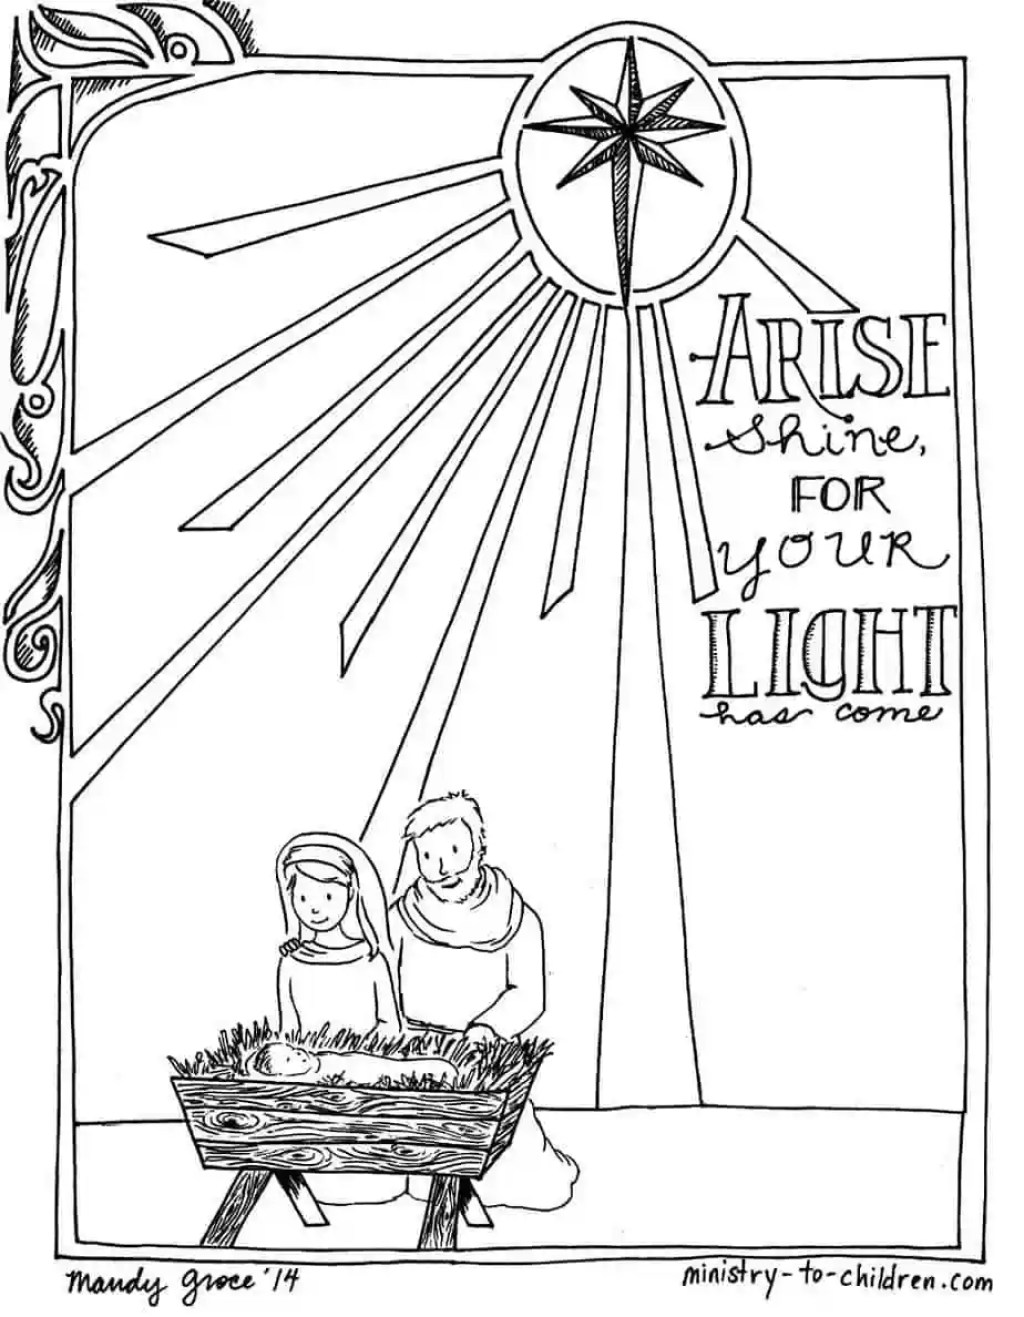 christmas coloring pages for childrens church | Printable Christmas Nativity Coloring Pages — Ministry-To ...